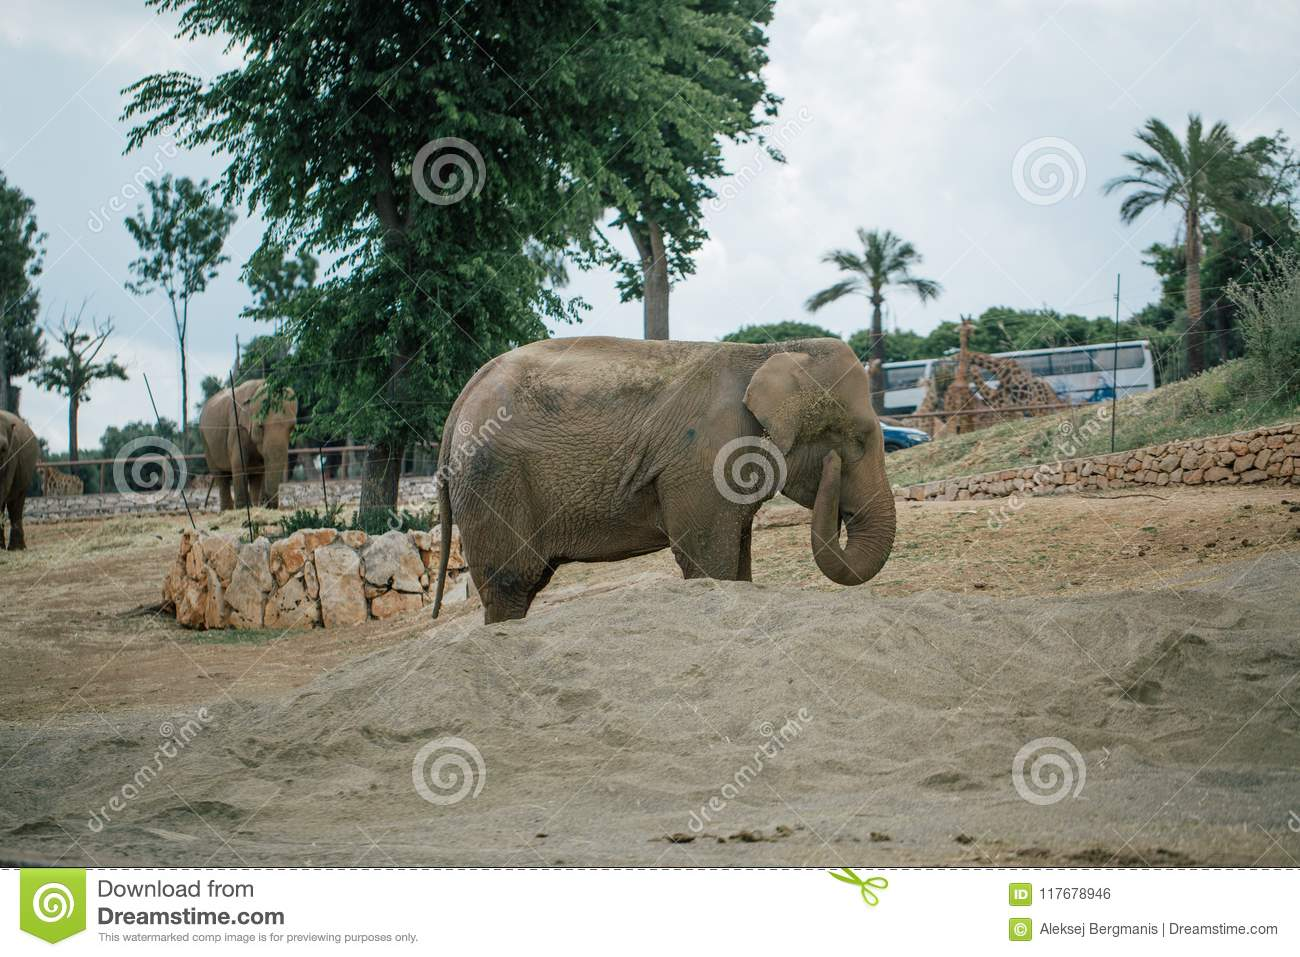 Elephant in Safari zoo Fasano apulia Italy